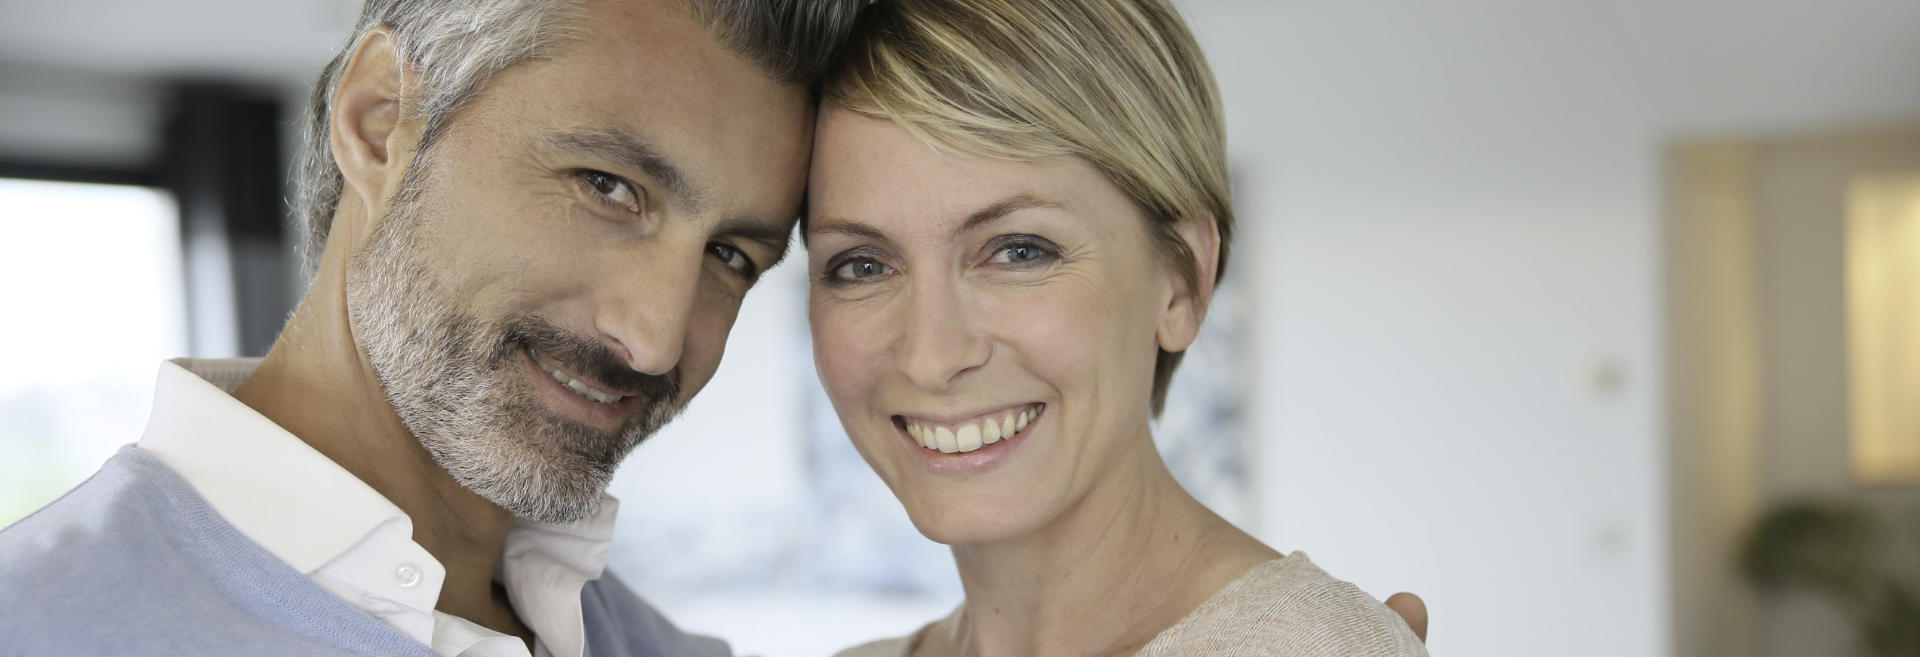 smiling middle-aged couple showing beautiful teeth in their smiles